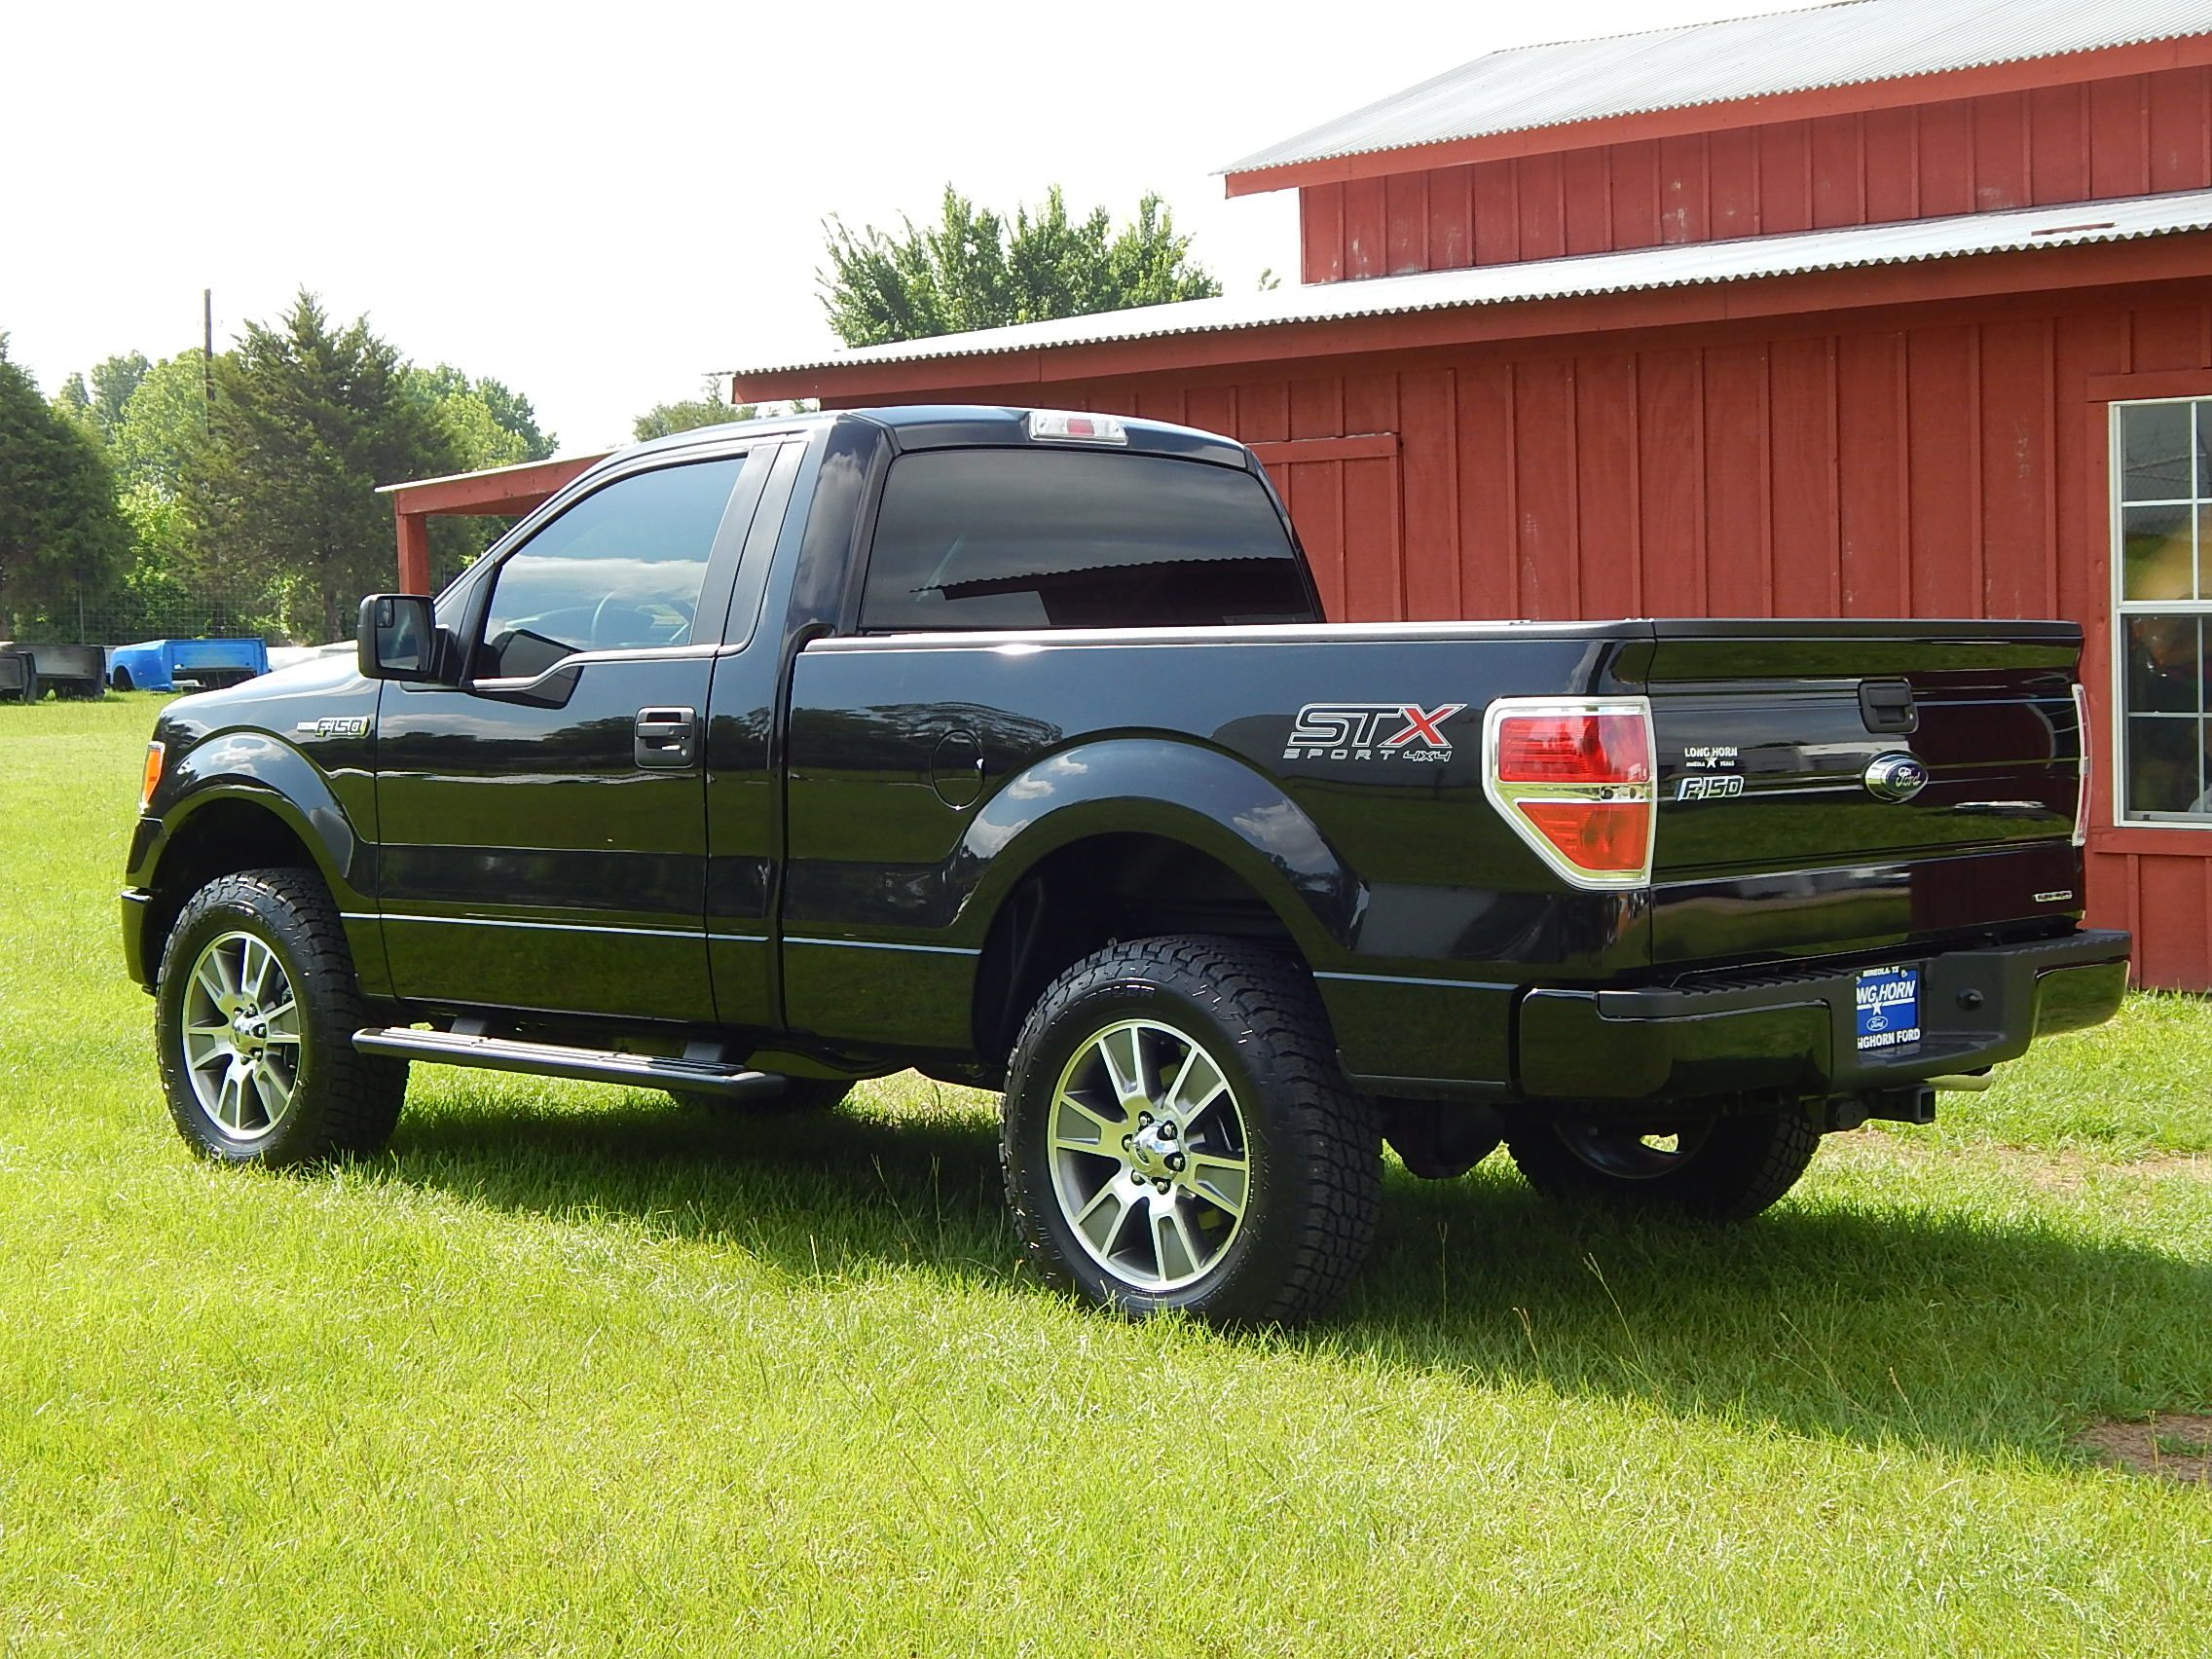 2014 ford f150 stx regular cab 4x4 we added a leveling kit custom window